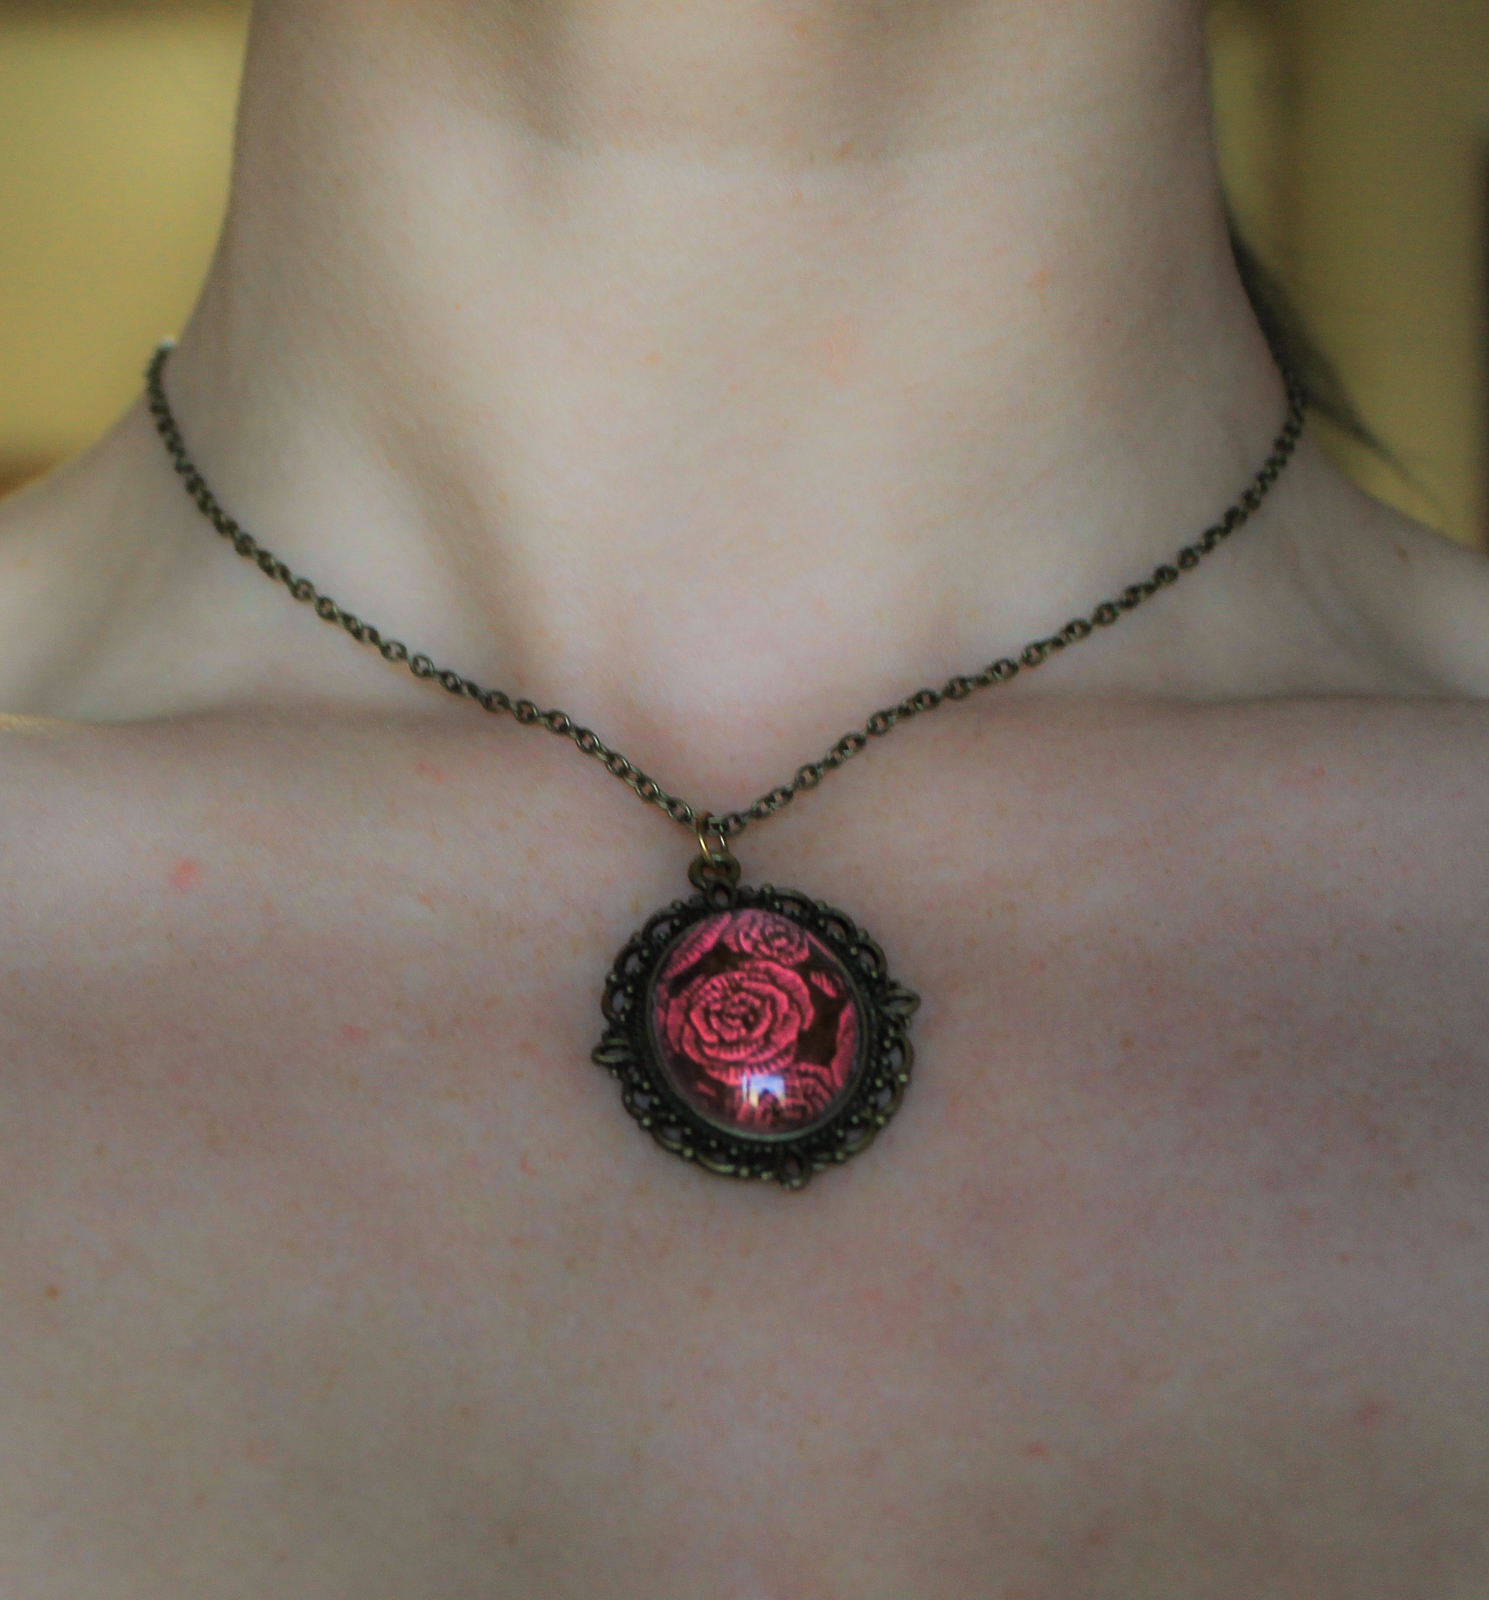 necklace-12.jpg